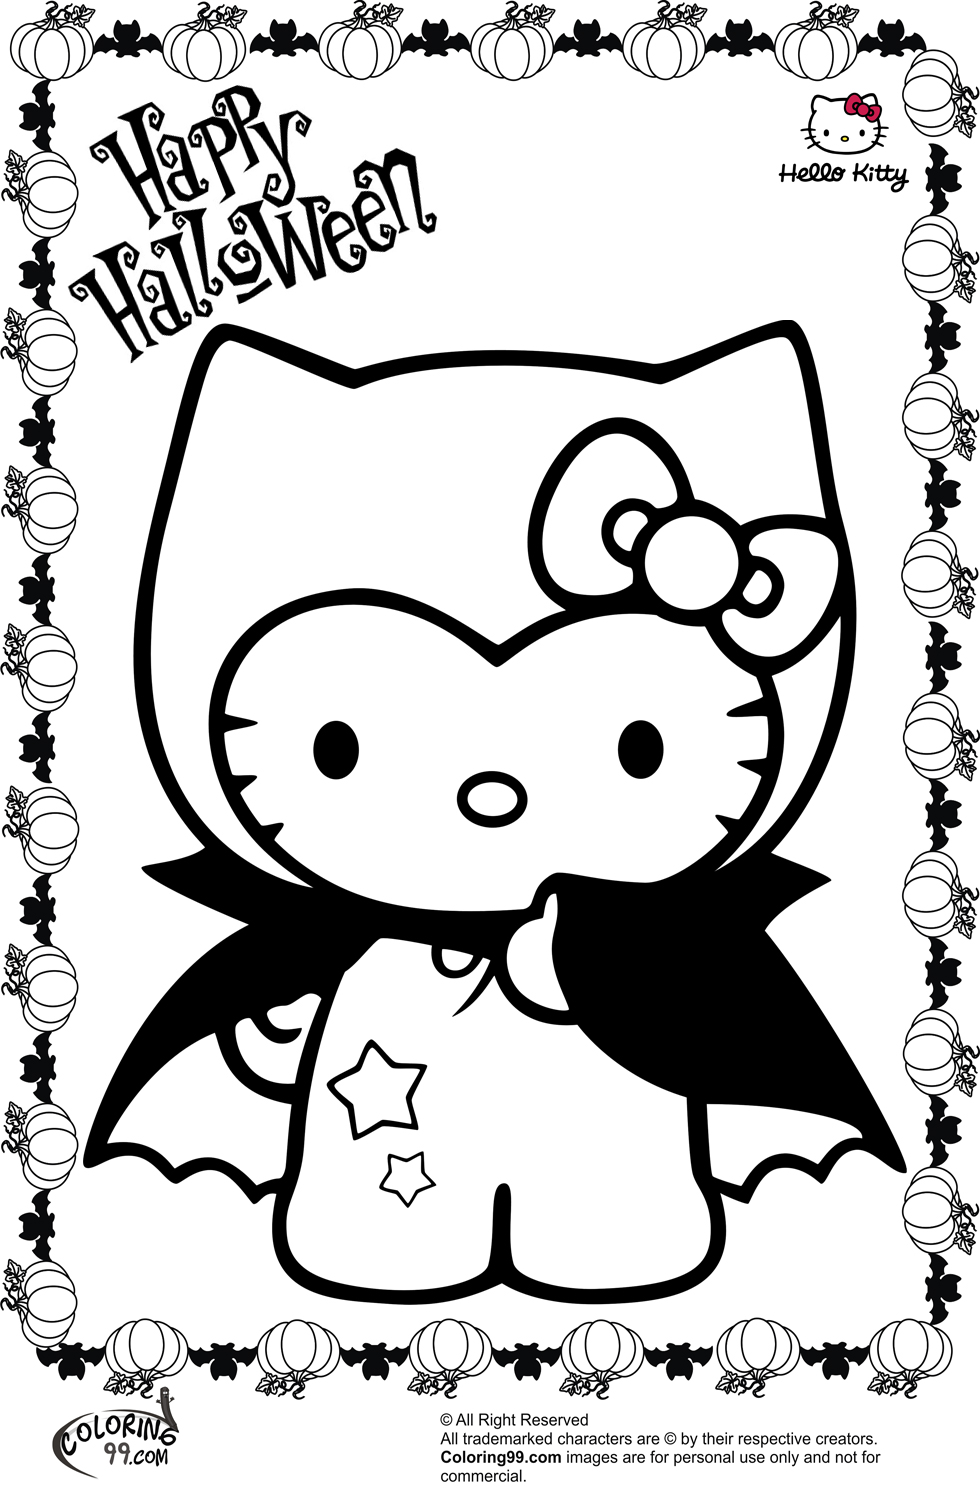 coloring templates halloween free printable halloween coloring pages updated 2021 templates halloween coloring